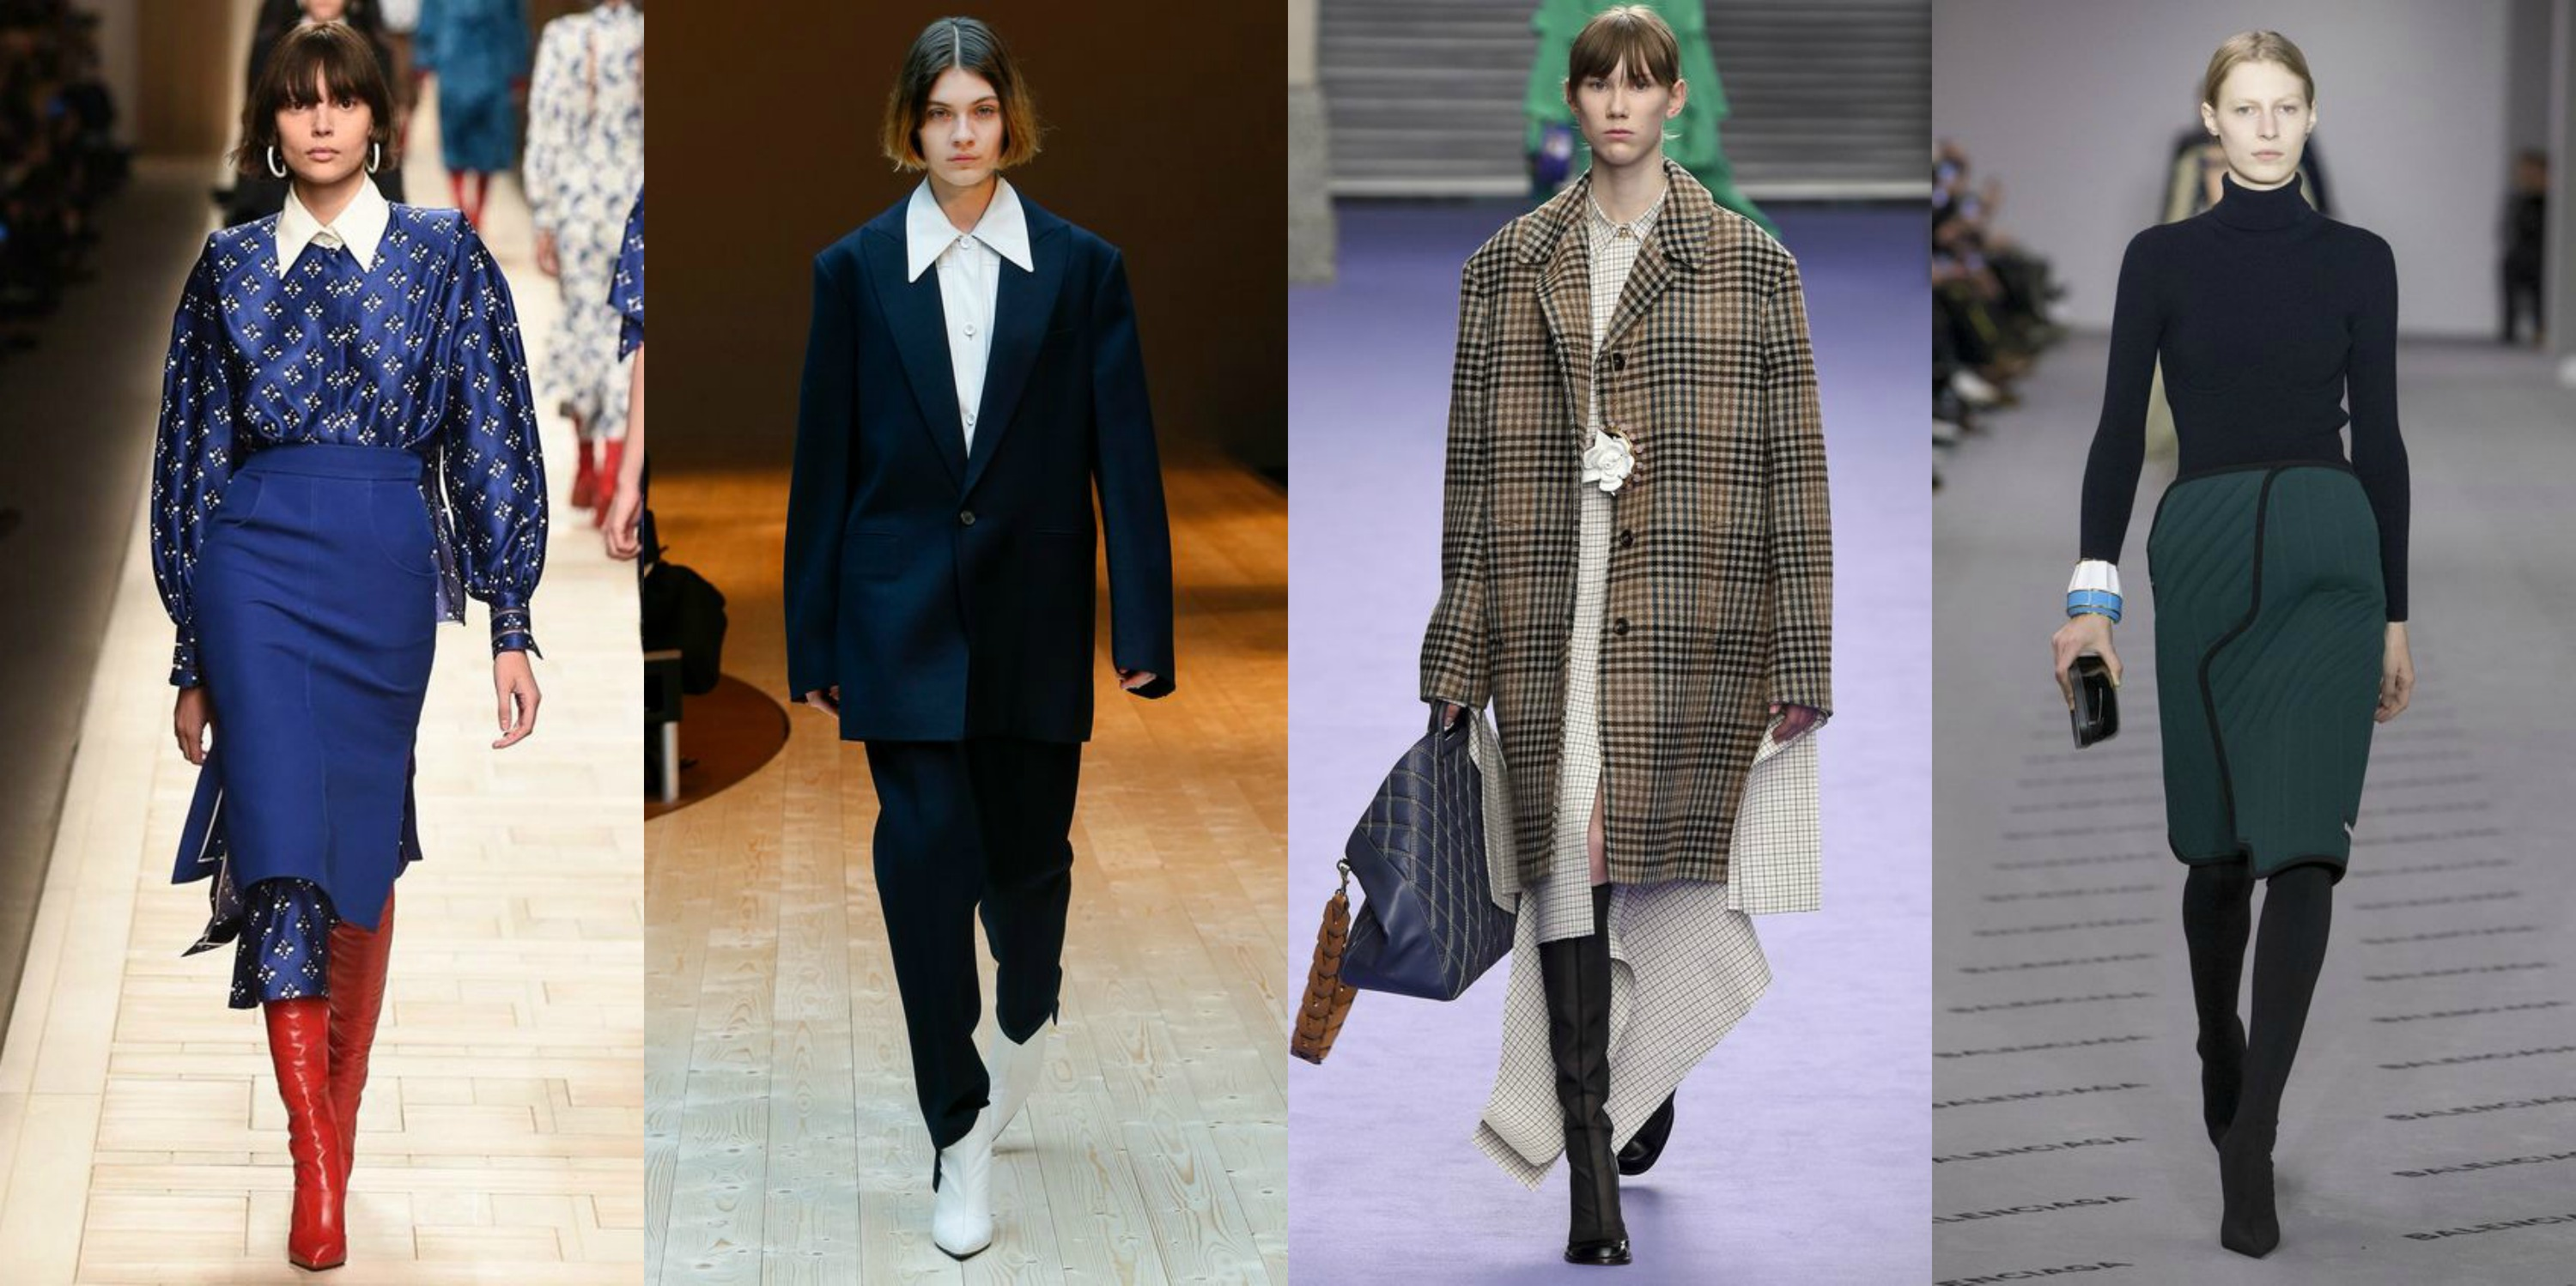 Cosa indosseremo quest'inverno 2017-18, cosa va di moda in questo periodo, outfit blogger autunno inverno 2017, sfilate inverno donna 2017-18, cosa va di moda autunno inverno 2017-18, elisa bellino, fashion blog, fashion blogger 2017, fashion blogger italiane 2017, blogger moda più seguite 2017, fashion blogger famose 2017, fashion blogger italiane 2017, fashion blogger milano 2017